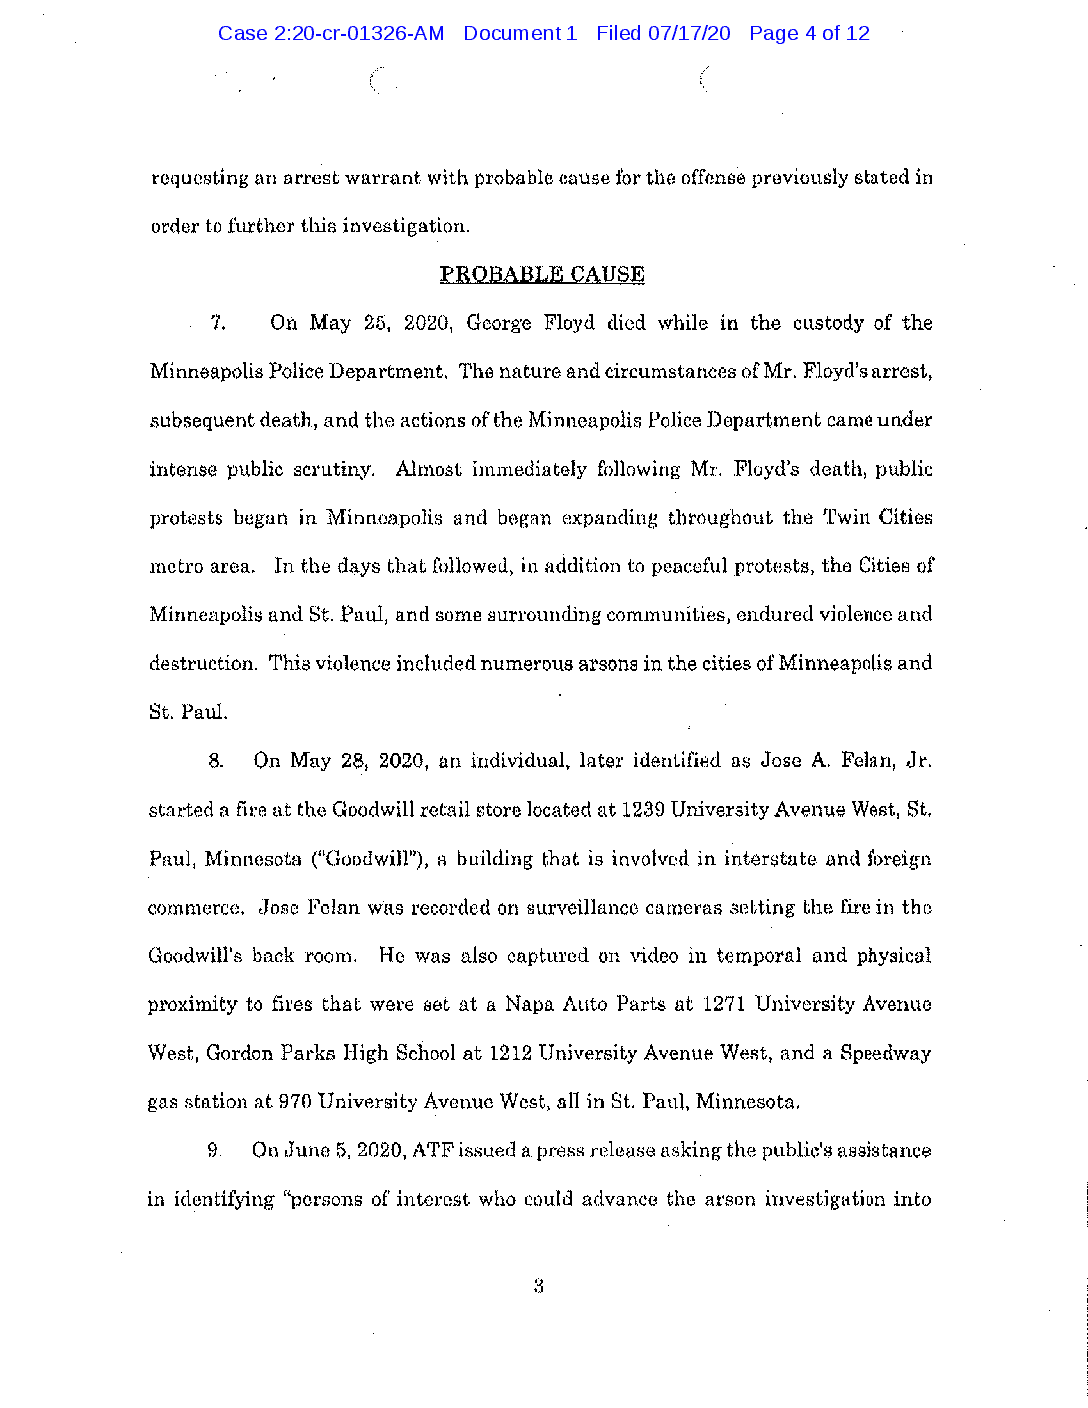 Page 4 of 12